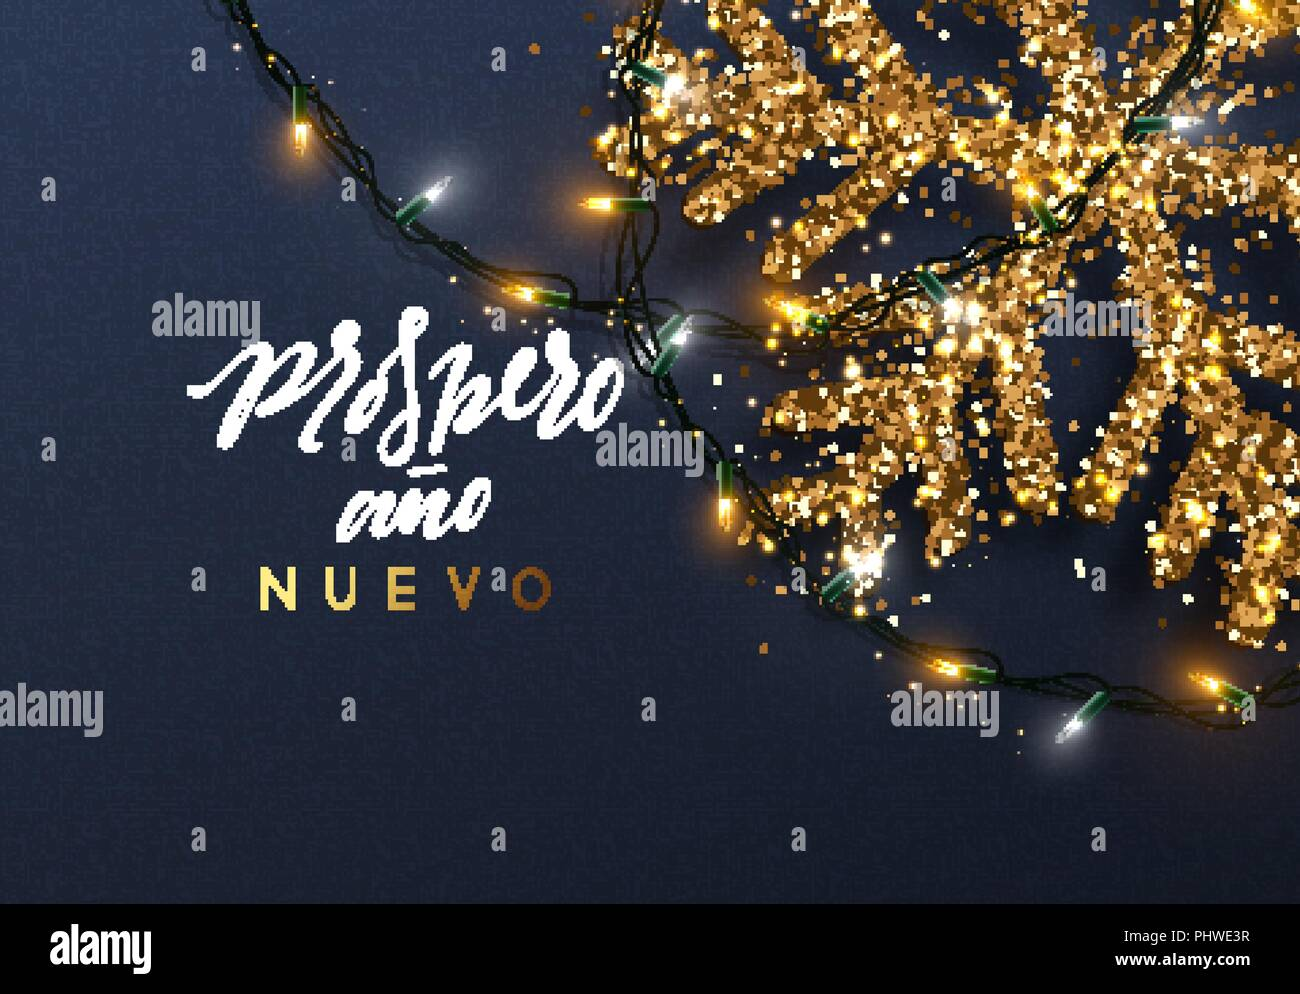 Christmas background with Shining gold Snowflakes. Spanish text ...